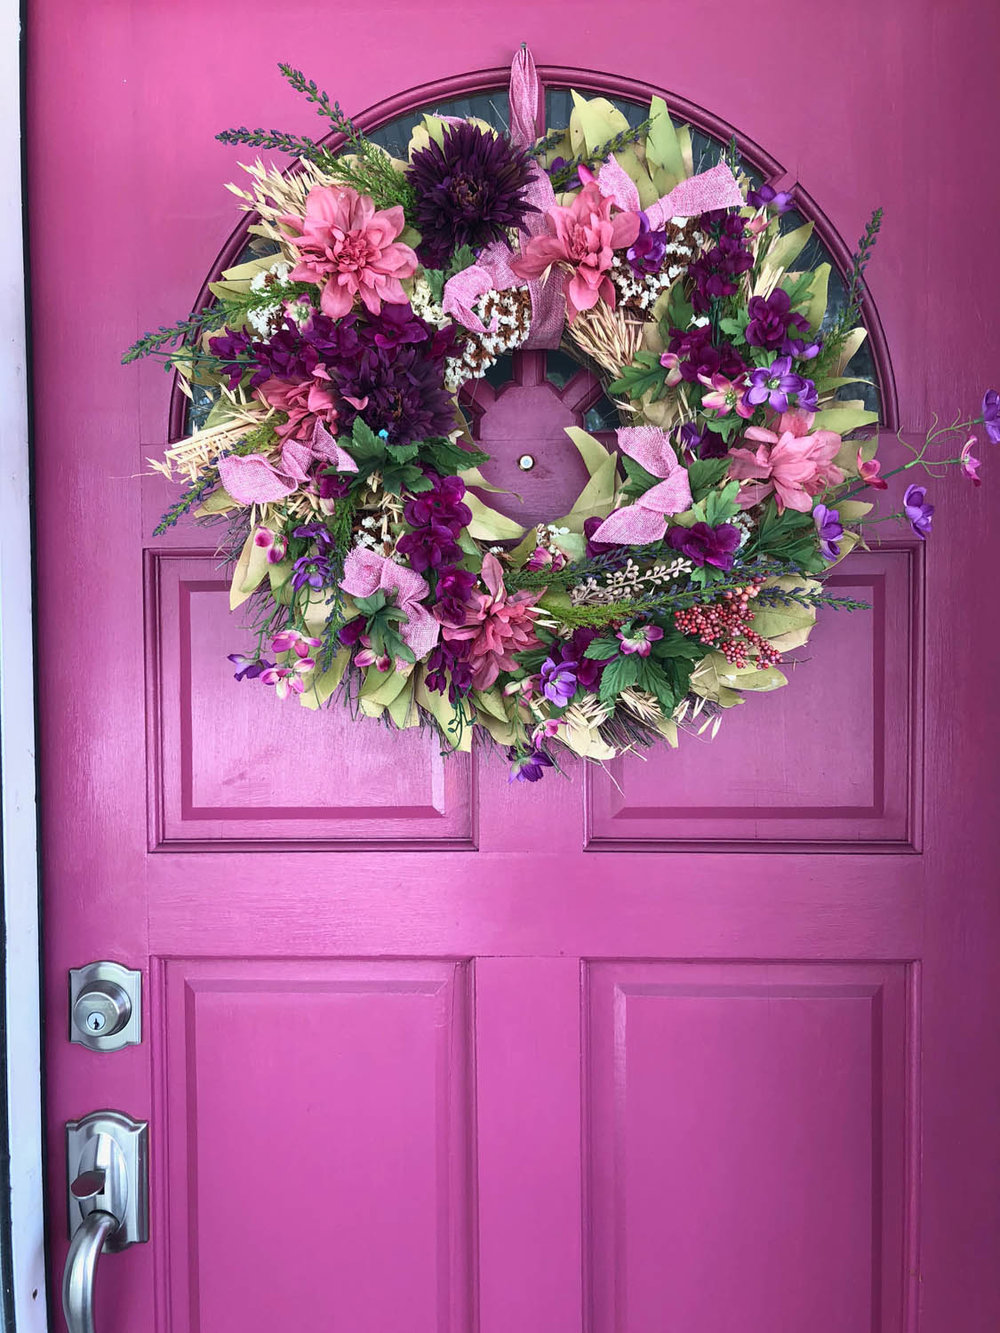 old faded wreath upcycled with fresh silk flowers hung on pink exterior door